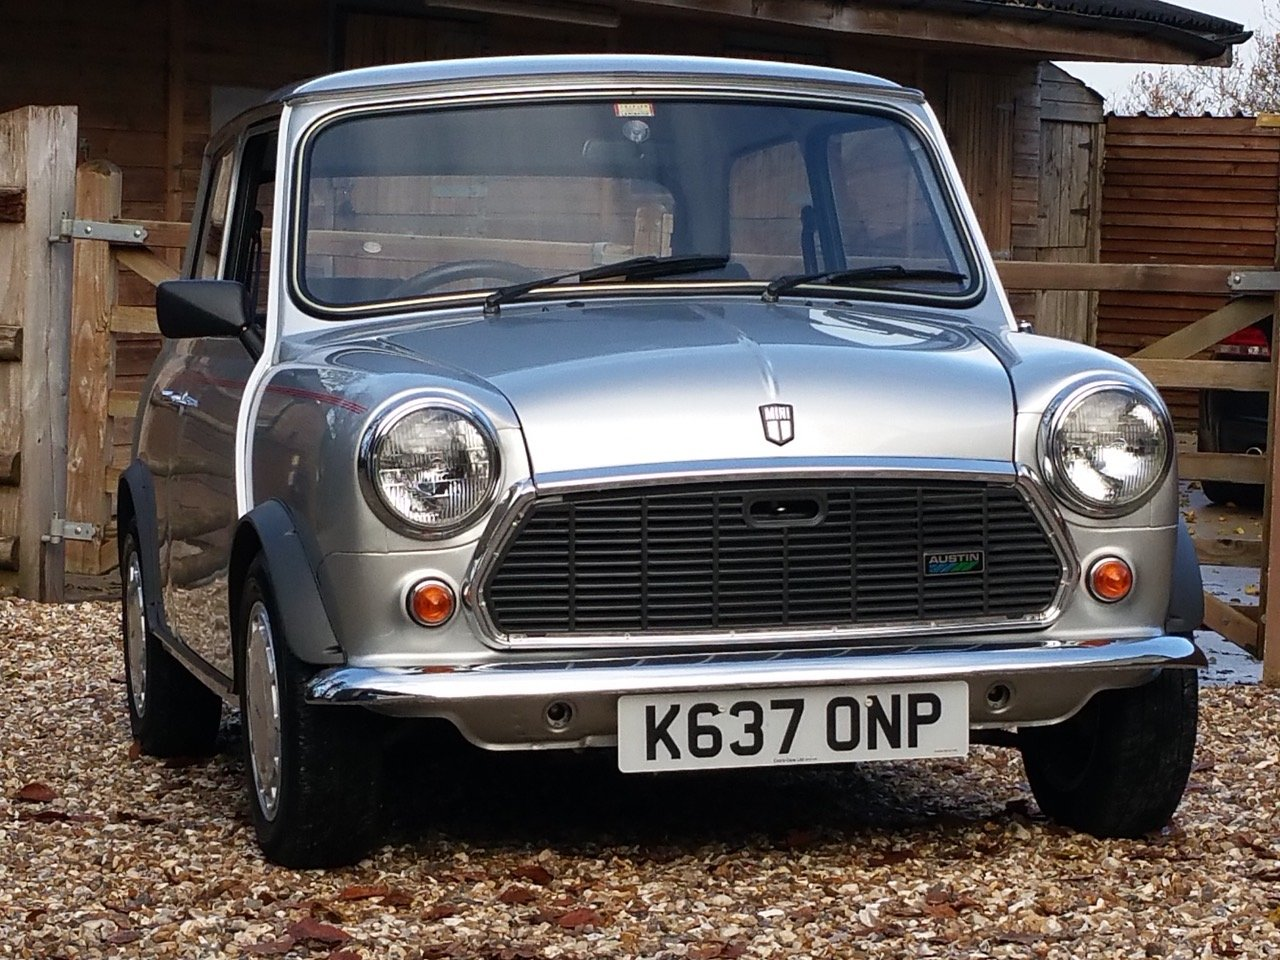 1992 'Time Warp' Mini Ritz On Just 3820 Miles From New SOLD (picture 1 of 10)